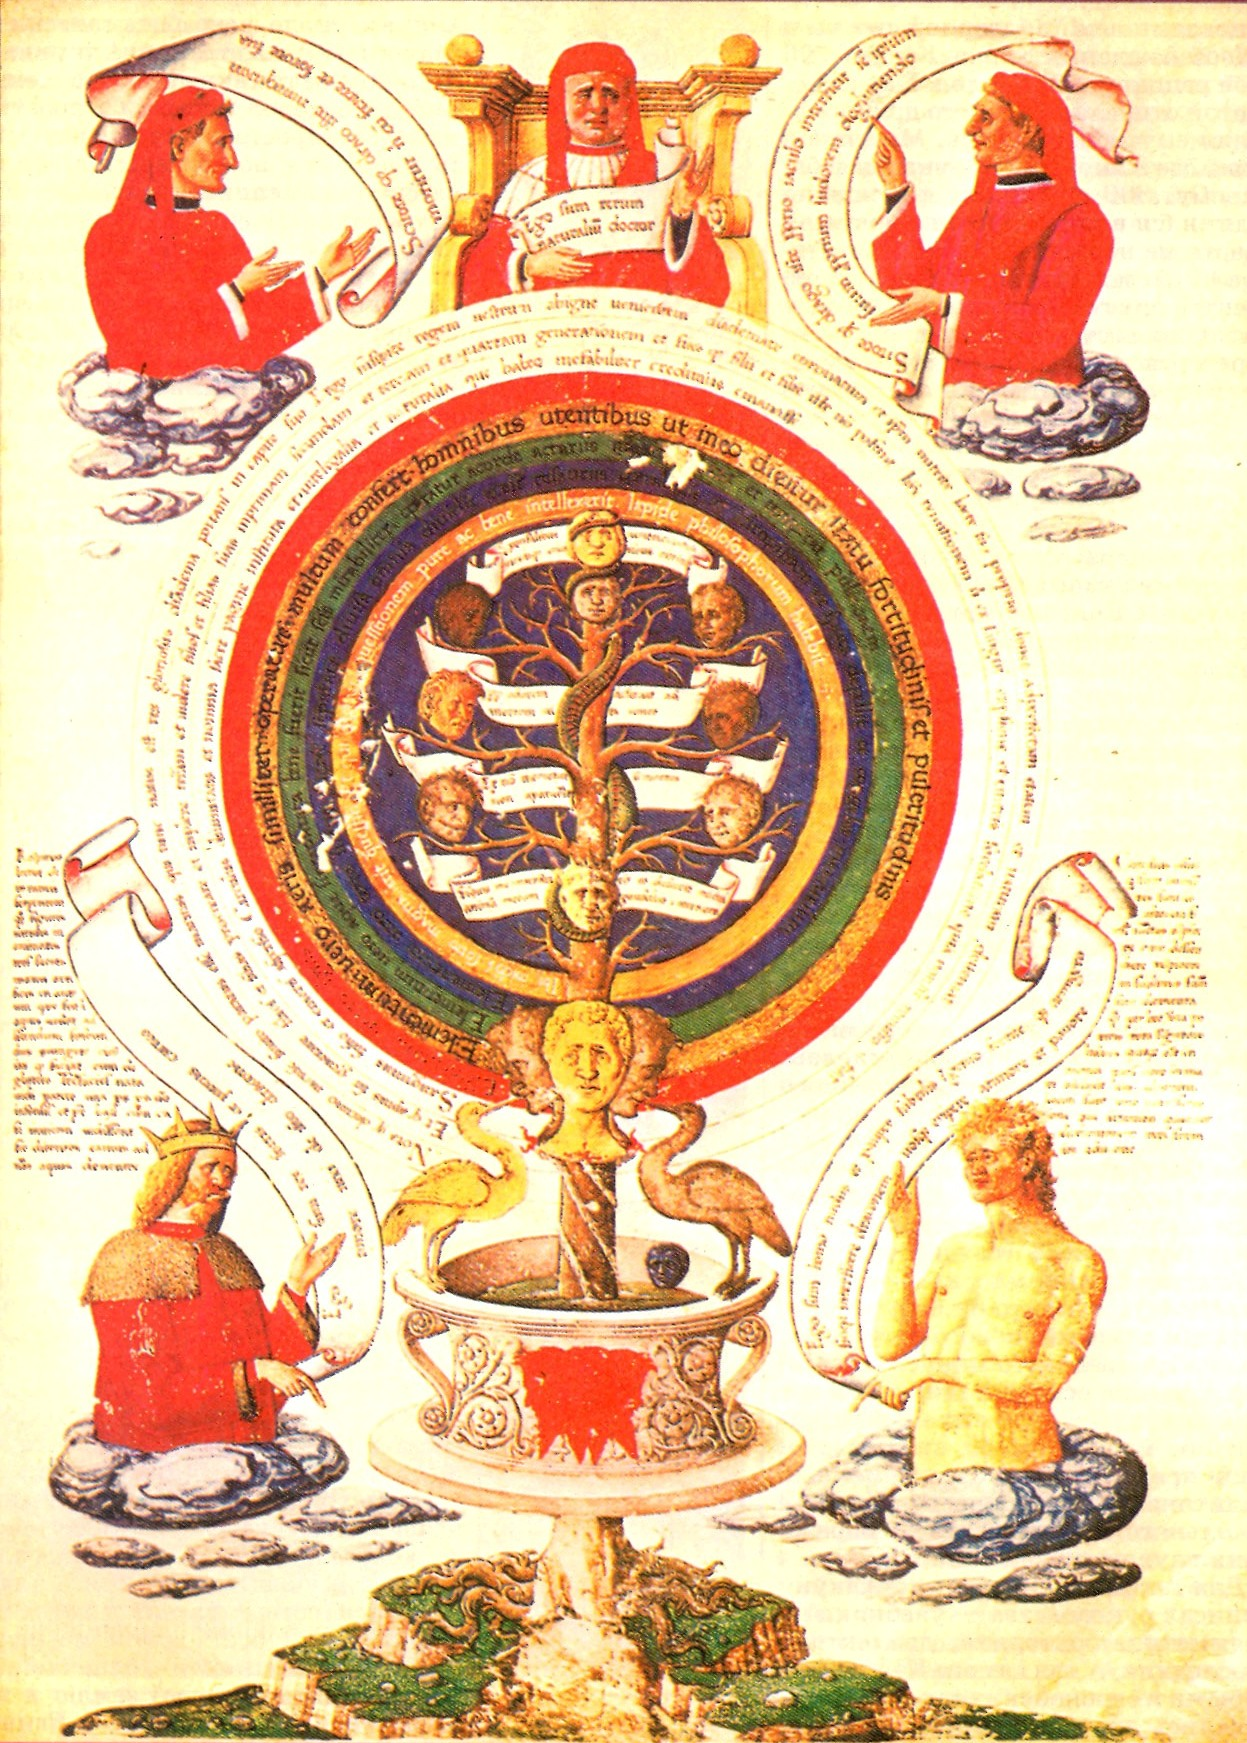 Image 9. Page from alchemic treatise of Ramon Llull [ca. 1232-ca. 1315, born in the Kingdom of Majorca], [manuscript illustration] 16th century [showing alchemical knowledge growing from a mountain]. Scanner not given.